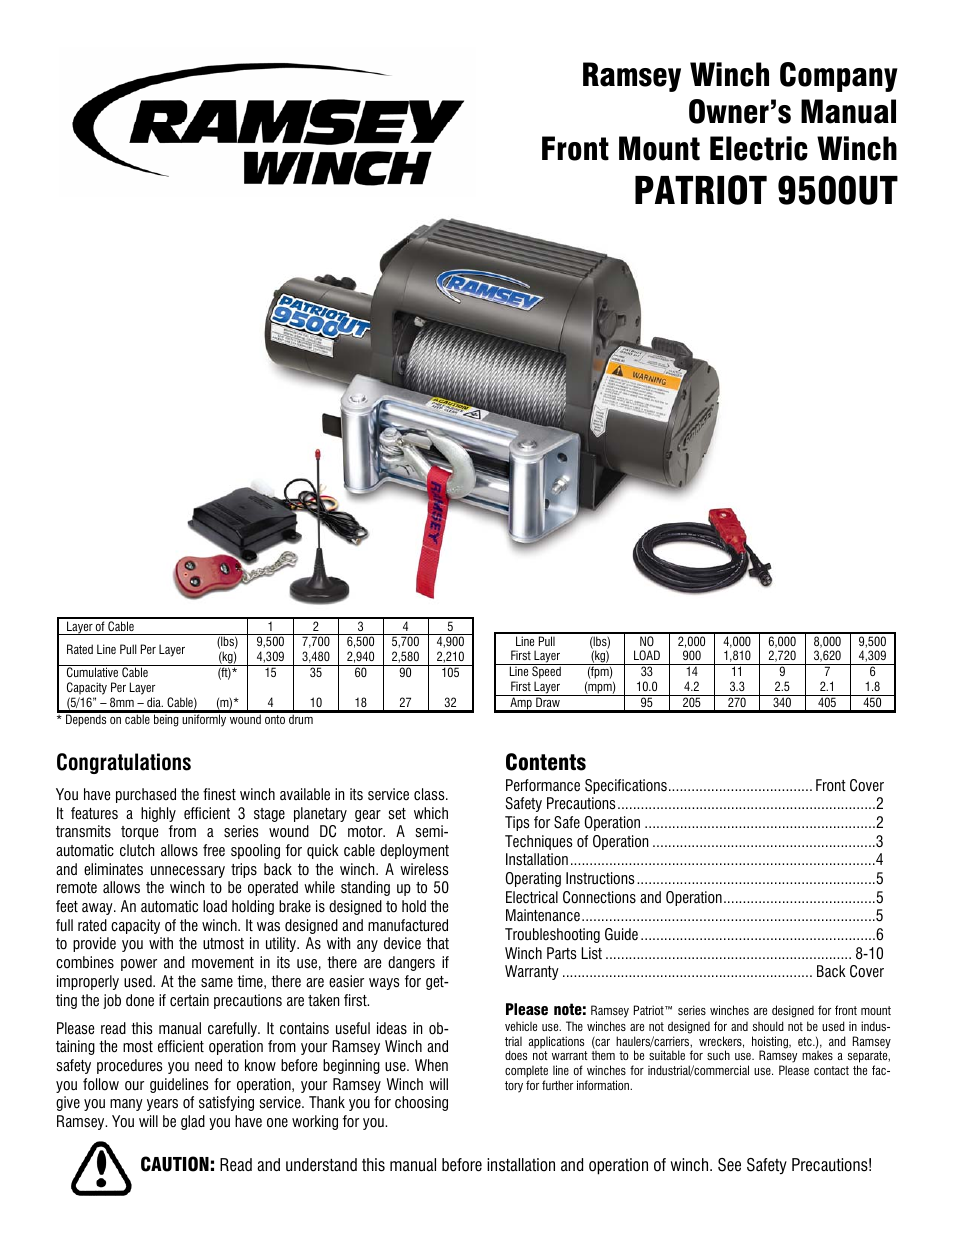 Ramsey Winch Patriot 9500 Ut User Manual 12 Pages Wiring Schematic Diagram Guide